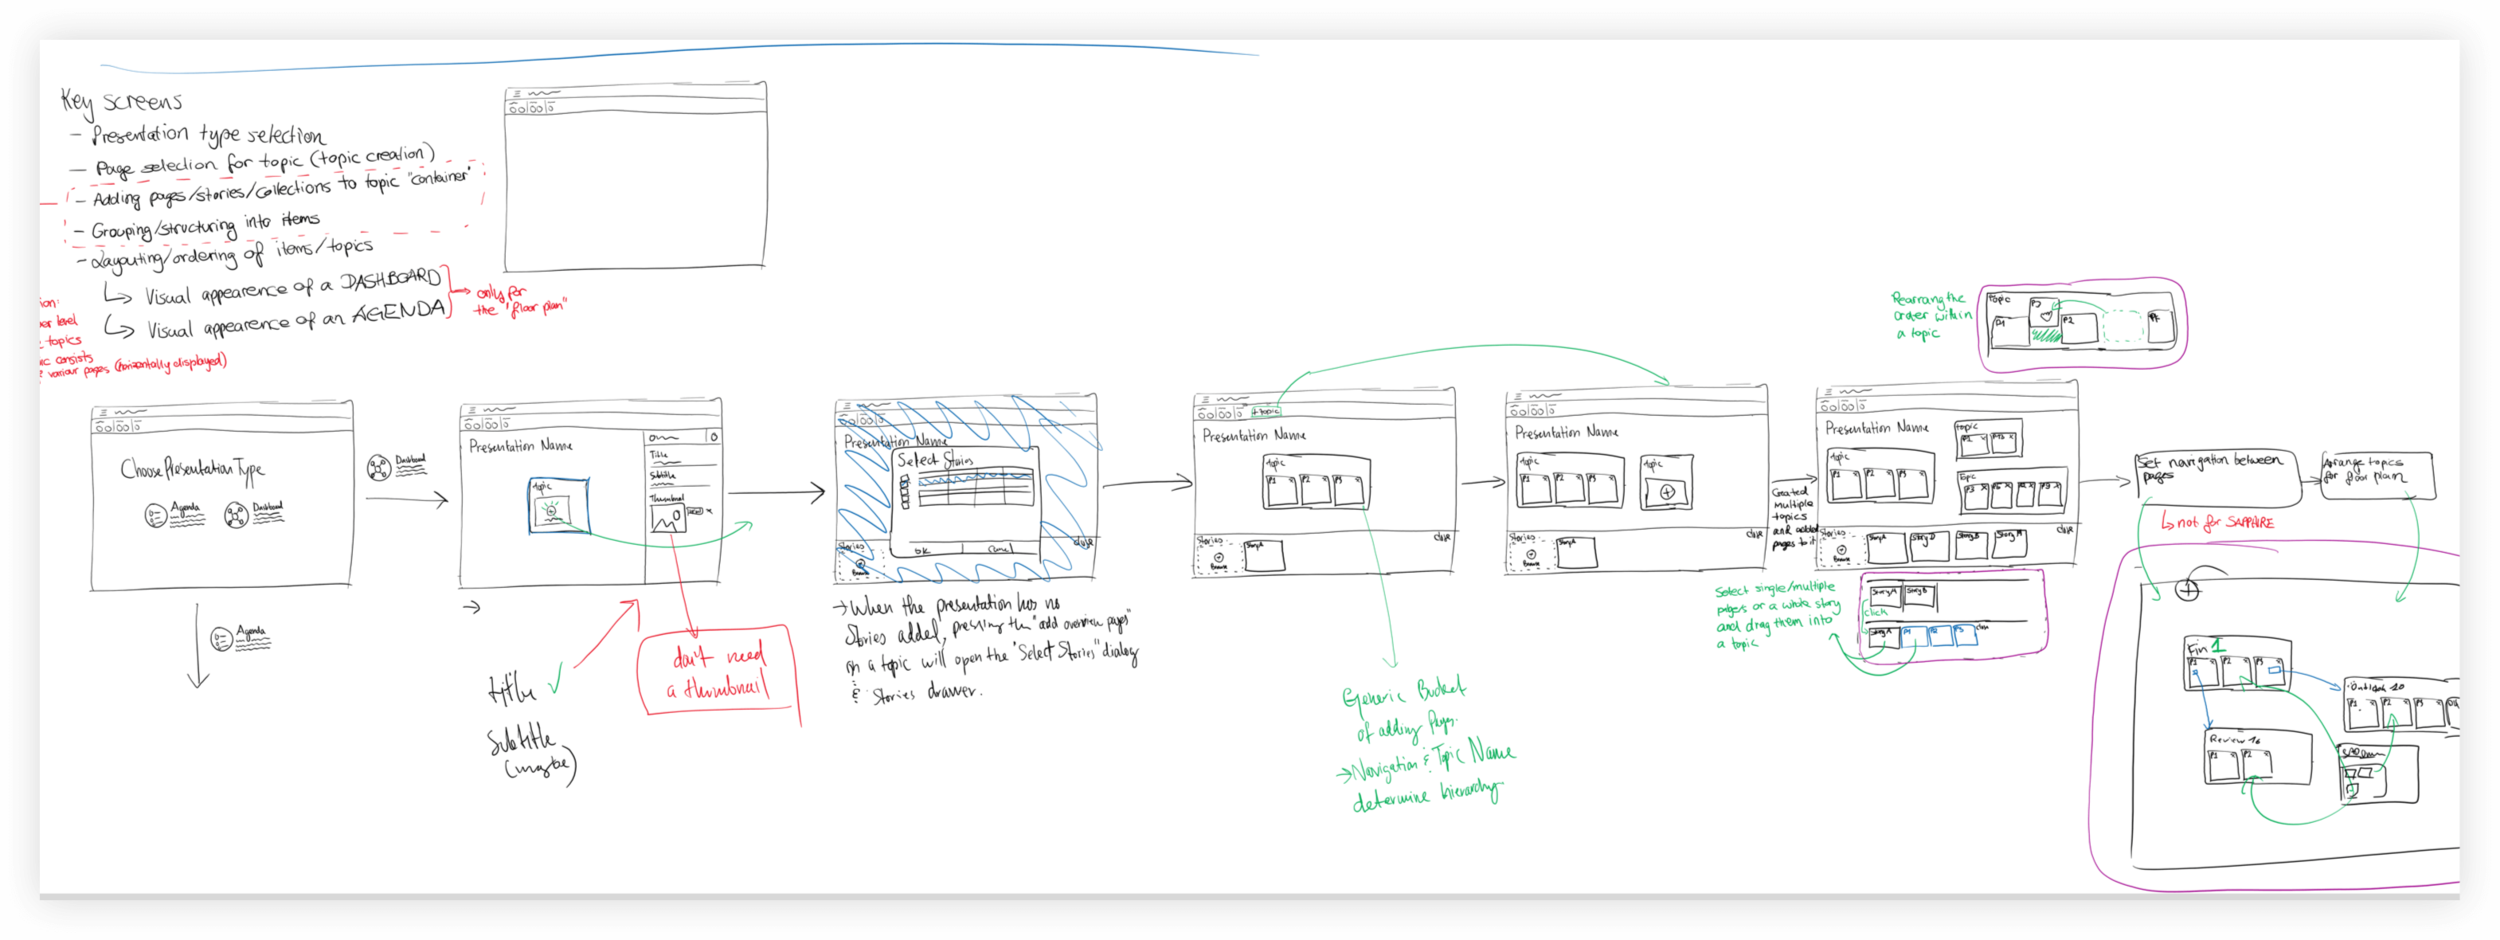 Sketch Wireframe: Exploring userflow & interaction patterns of populating topics for a boardroom.